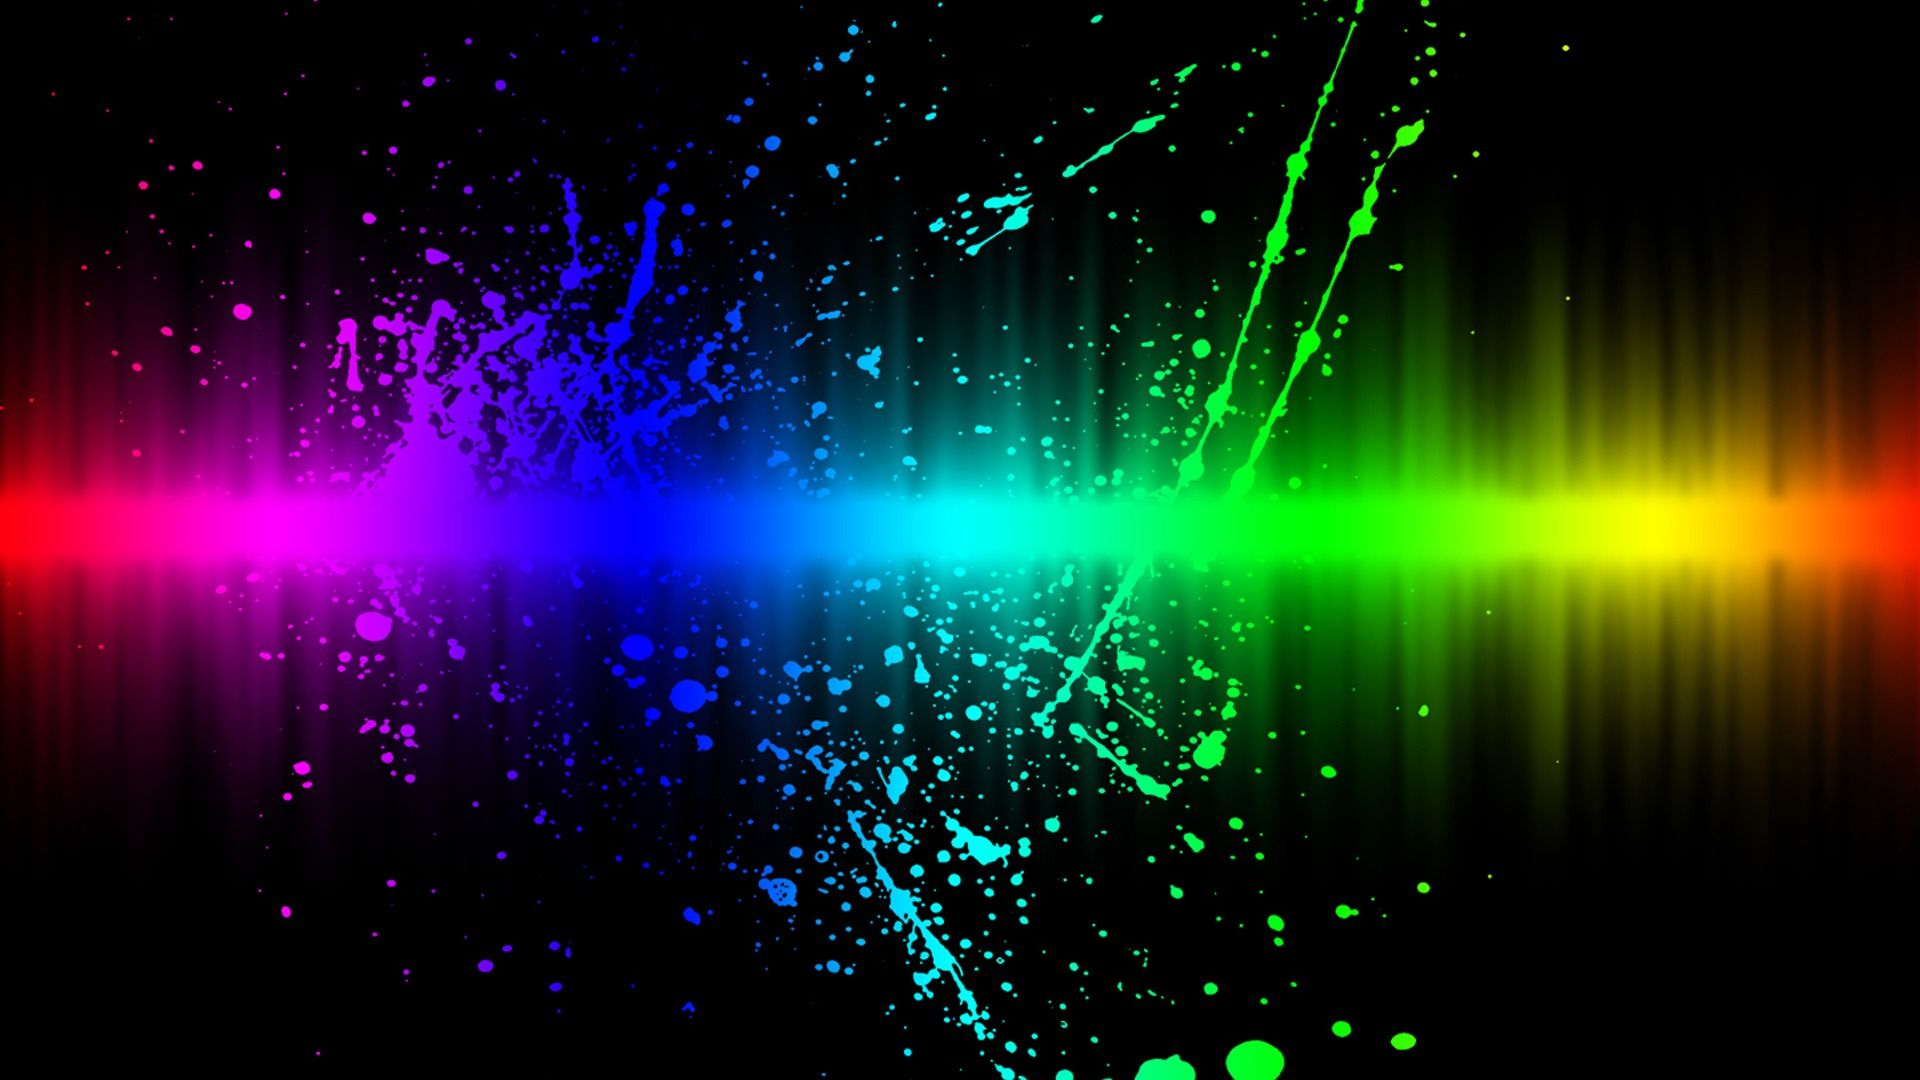 Neon Light Wallpaper